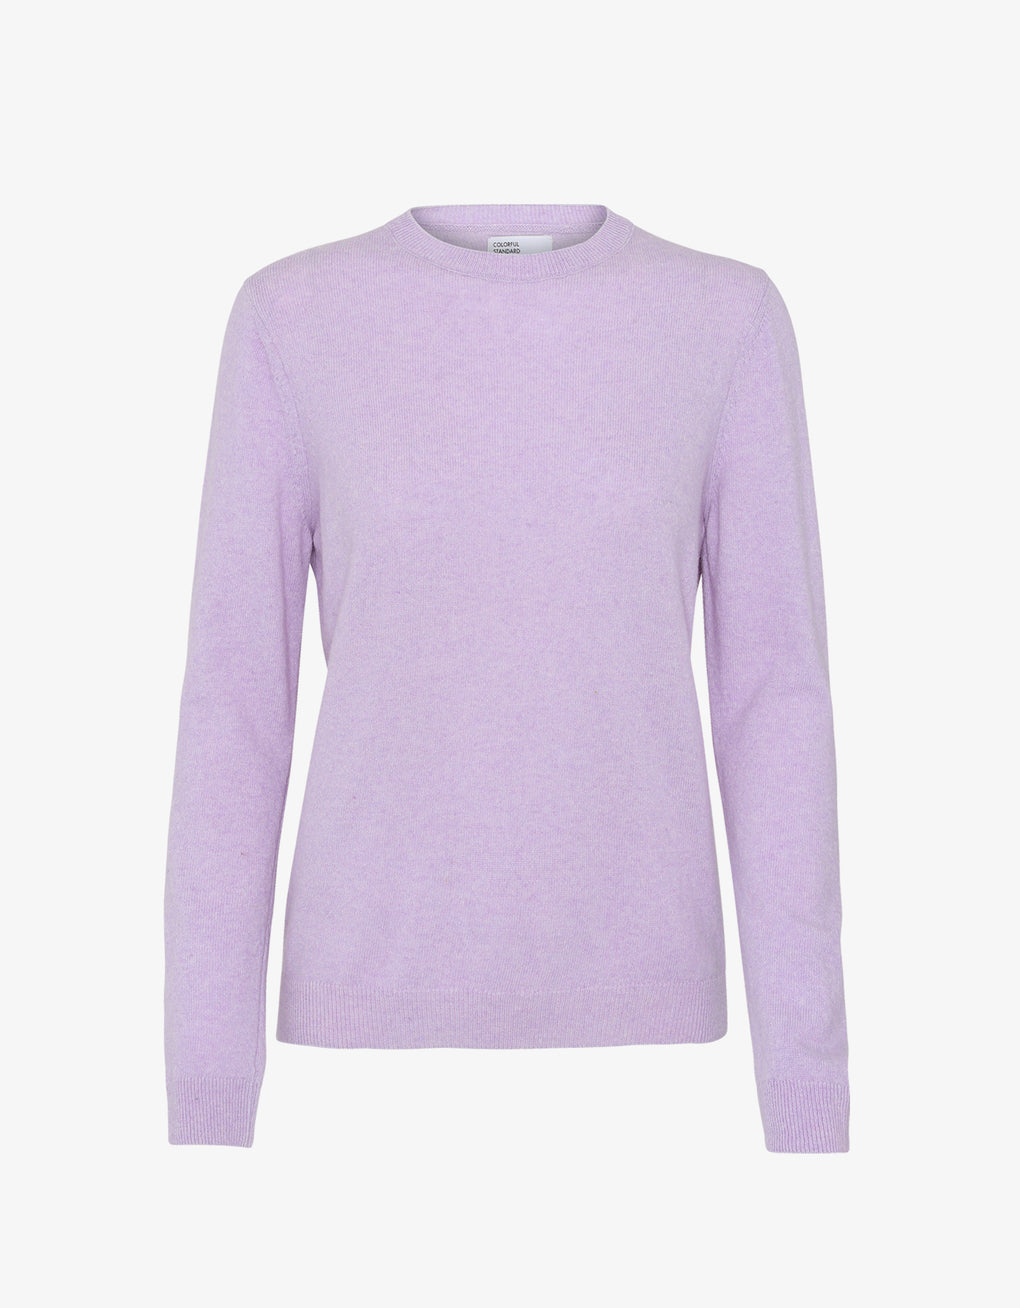 Colorful Standard Women Light Merino Wool Crew Women Merino Crewneck Soft Lavender